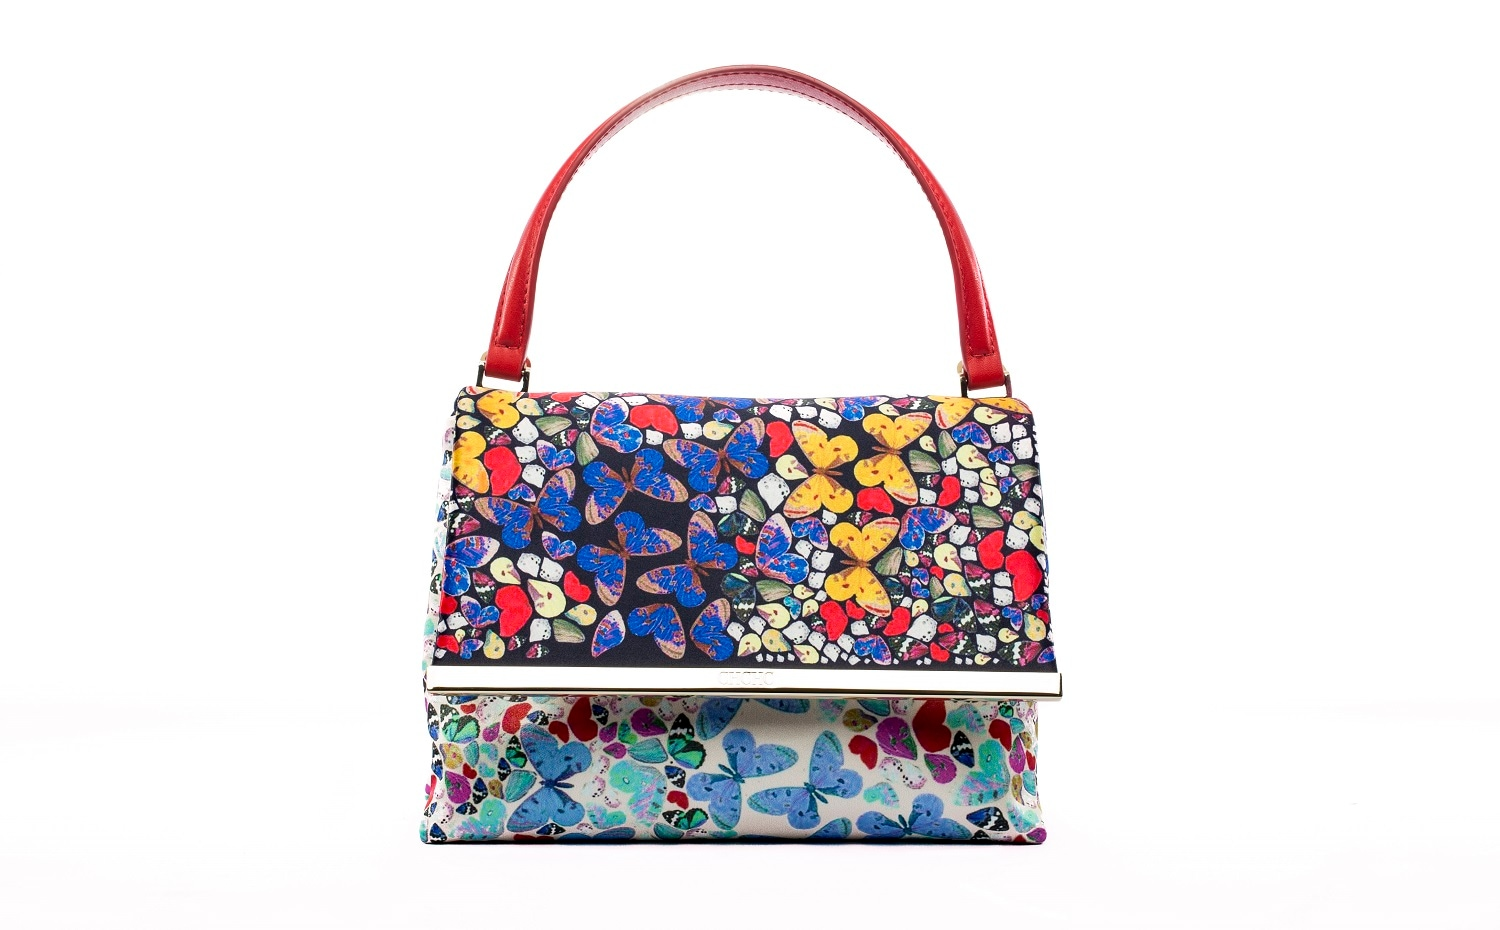 CH Carolina Herrera: Camelot Bag